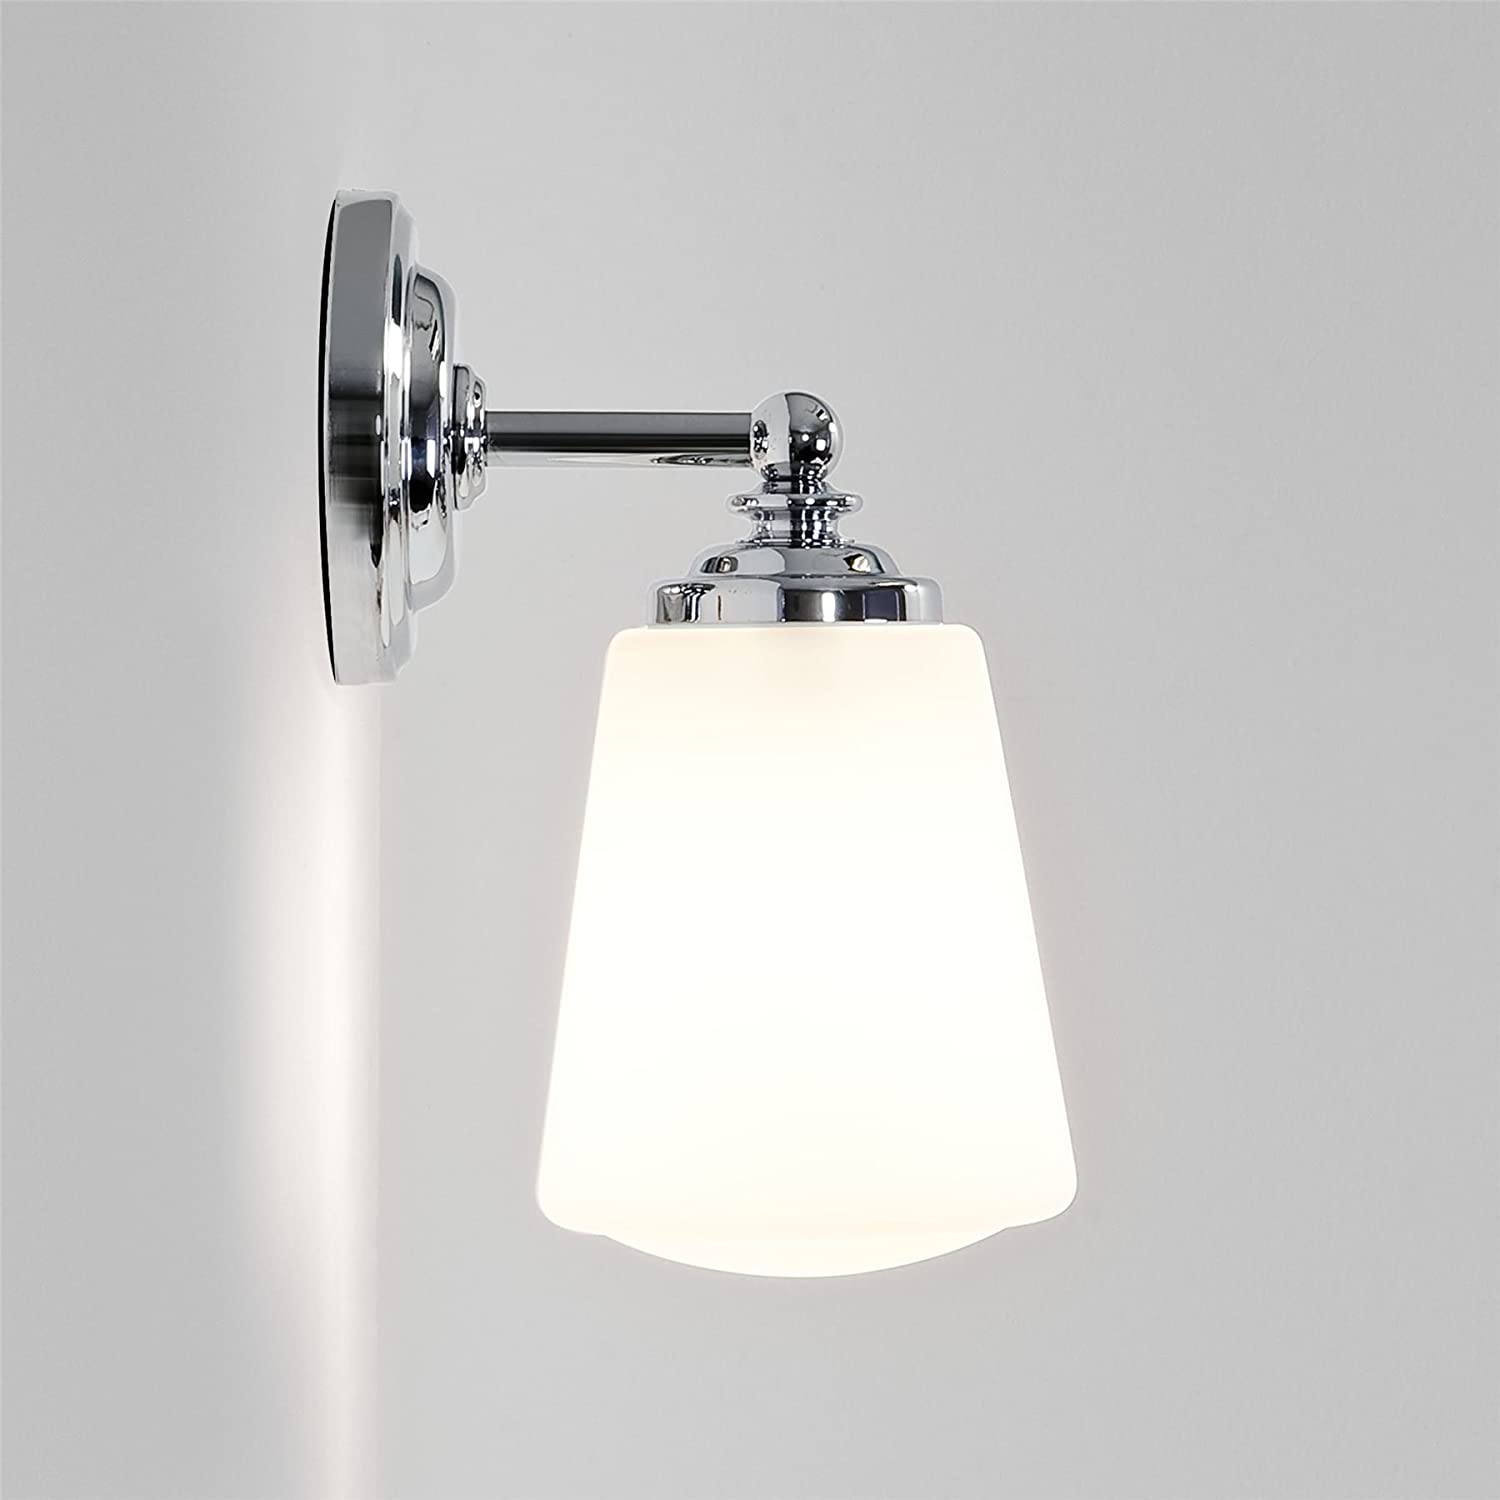 Astro Lighting – Anton 0507 Astro Lighting - Anton 0507